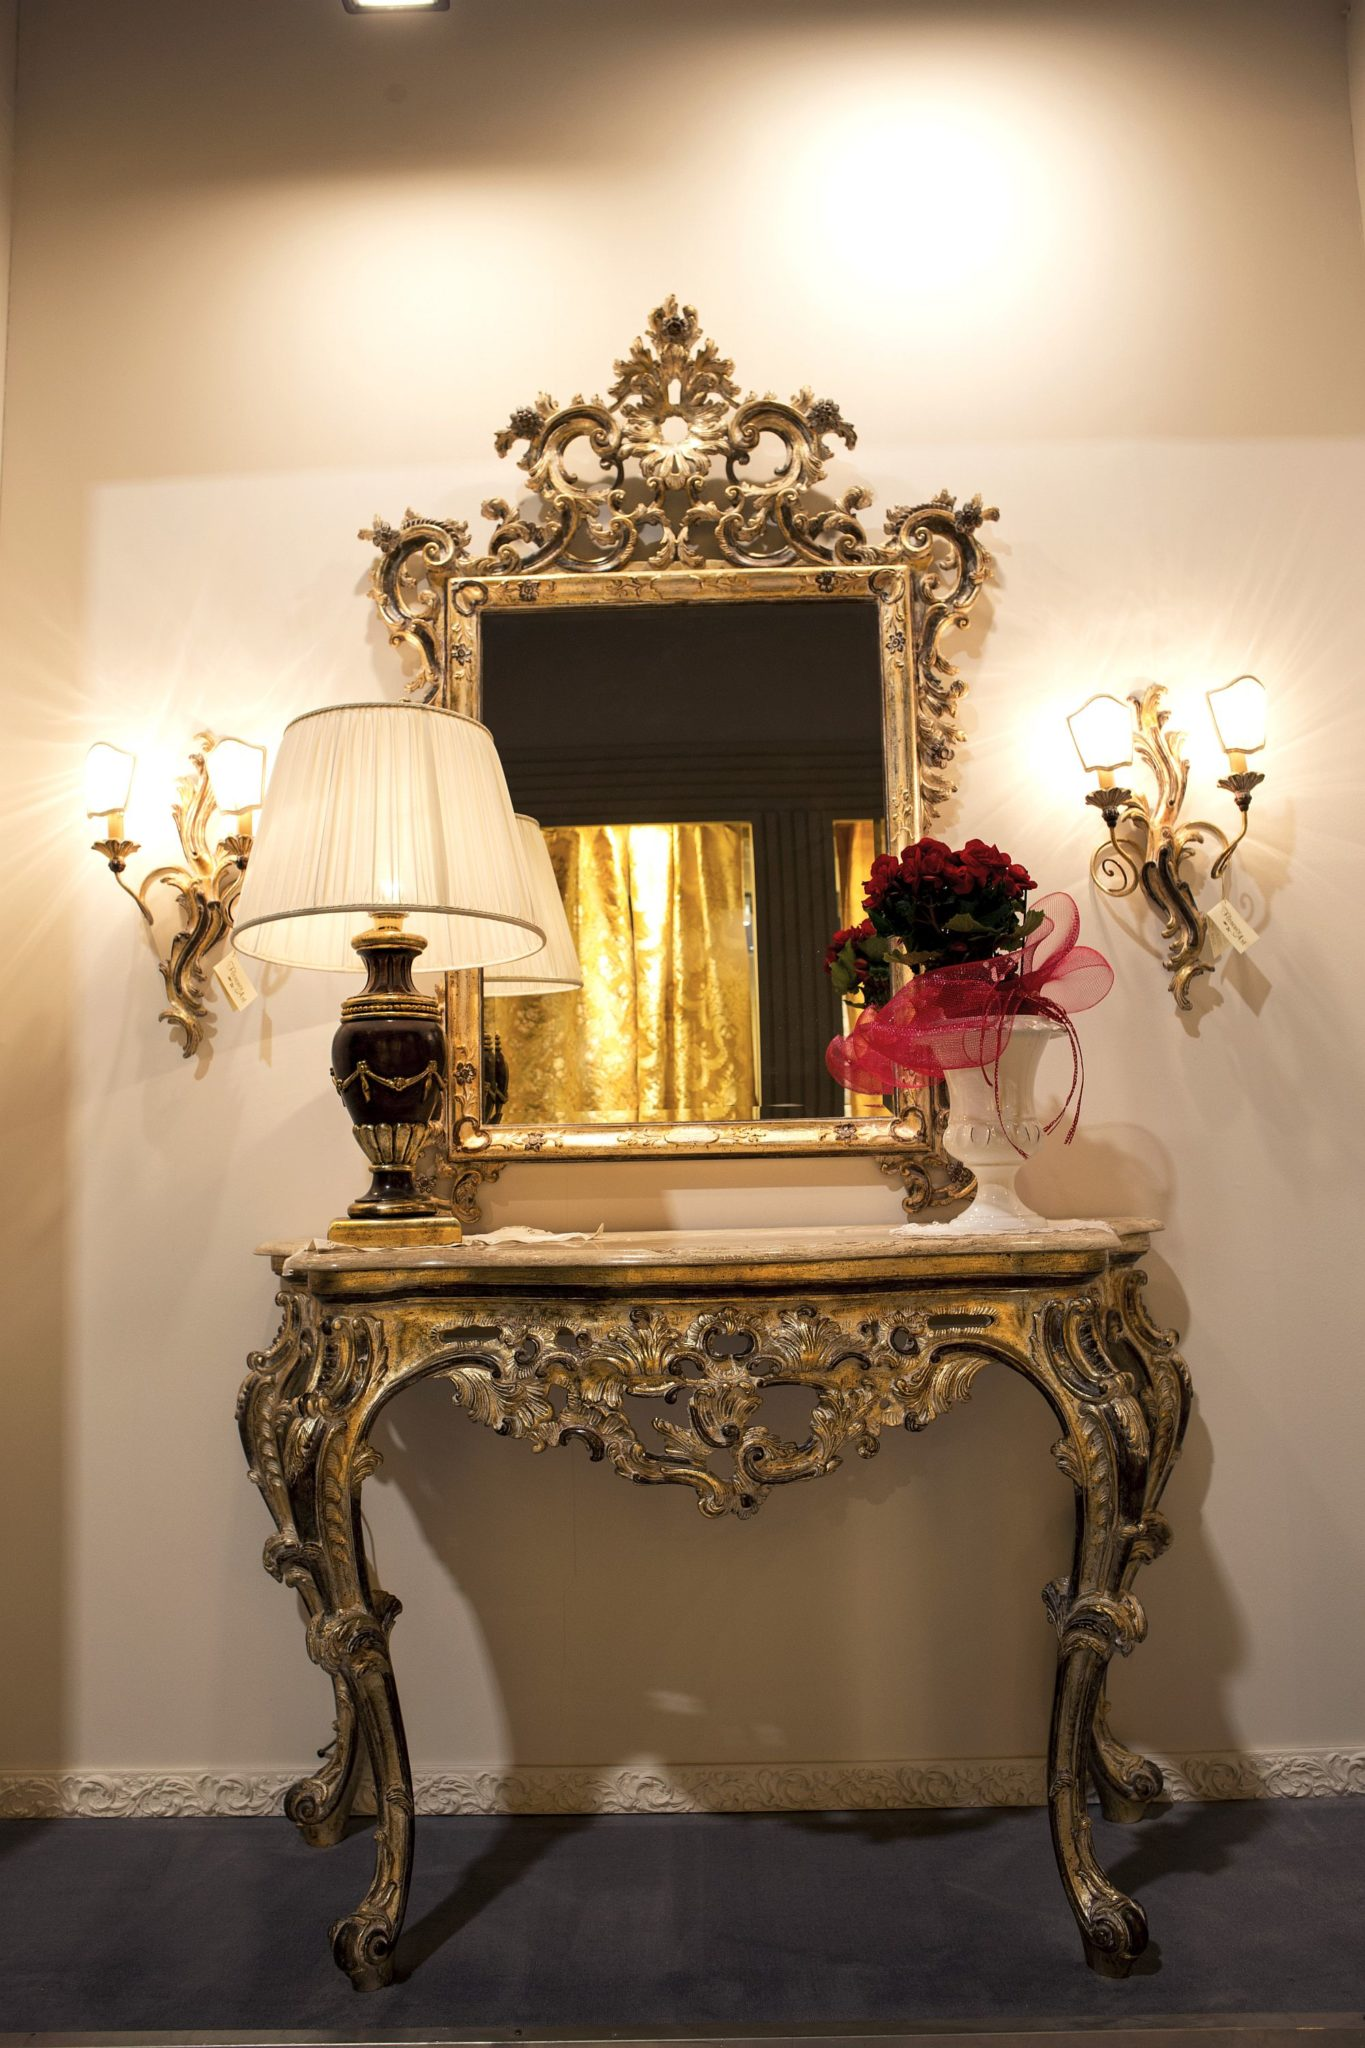 Victorian style console table and mirror for the small entryway